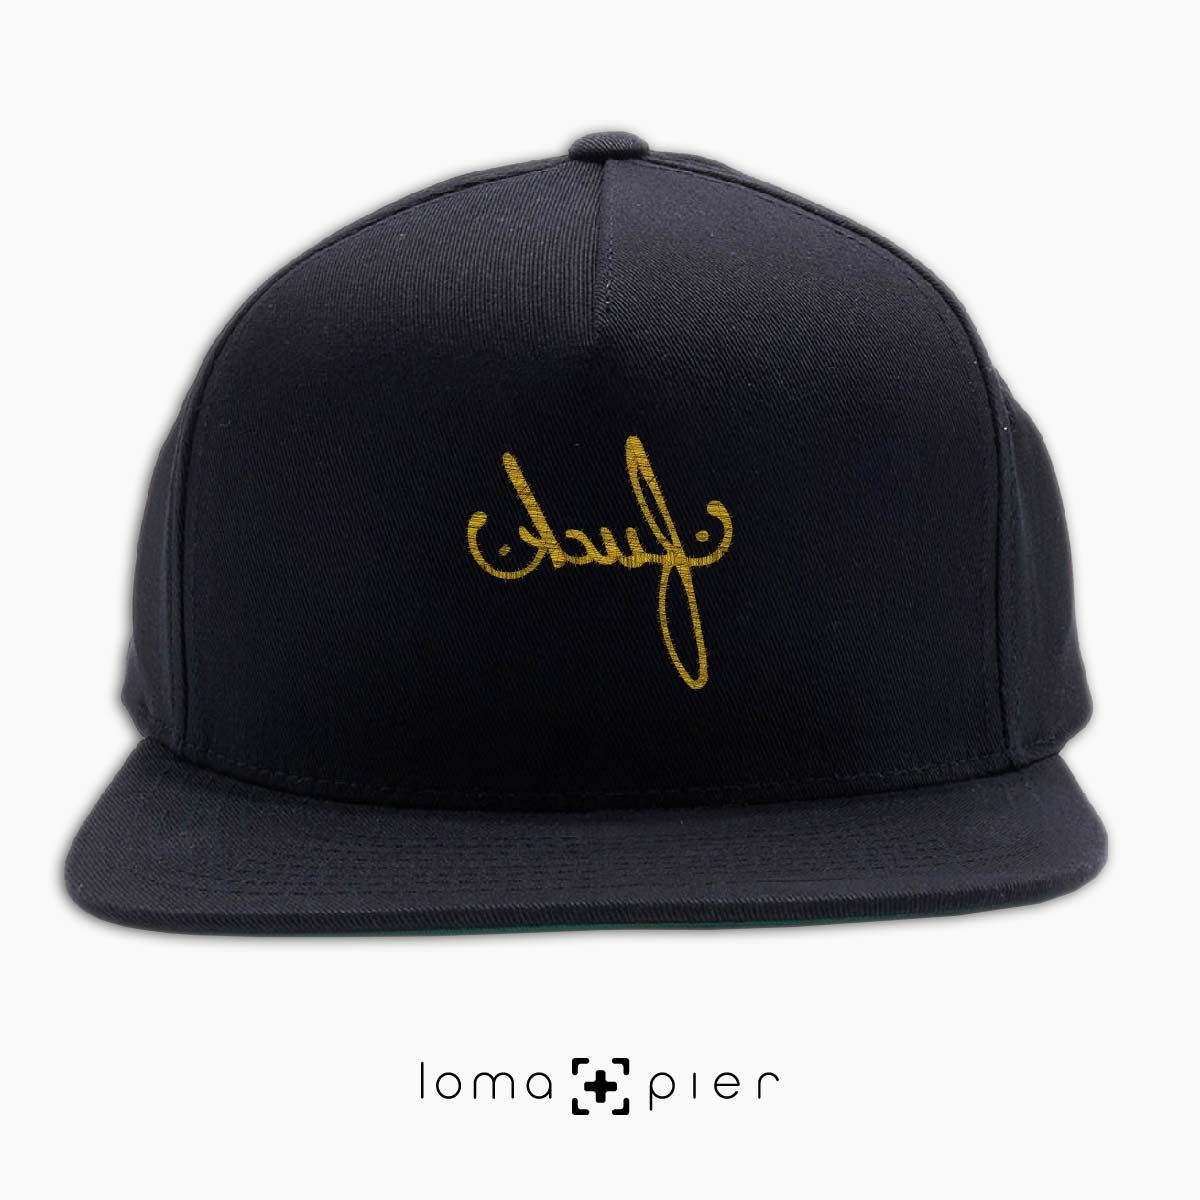 edfd342fbdfbc F CK typography embroidered on a black classic snapback hat with gold  thread by loma